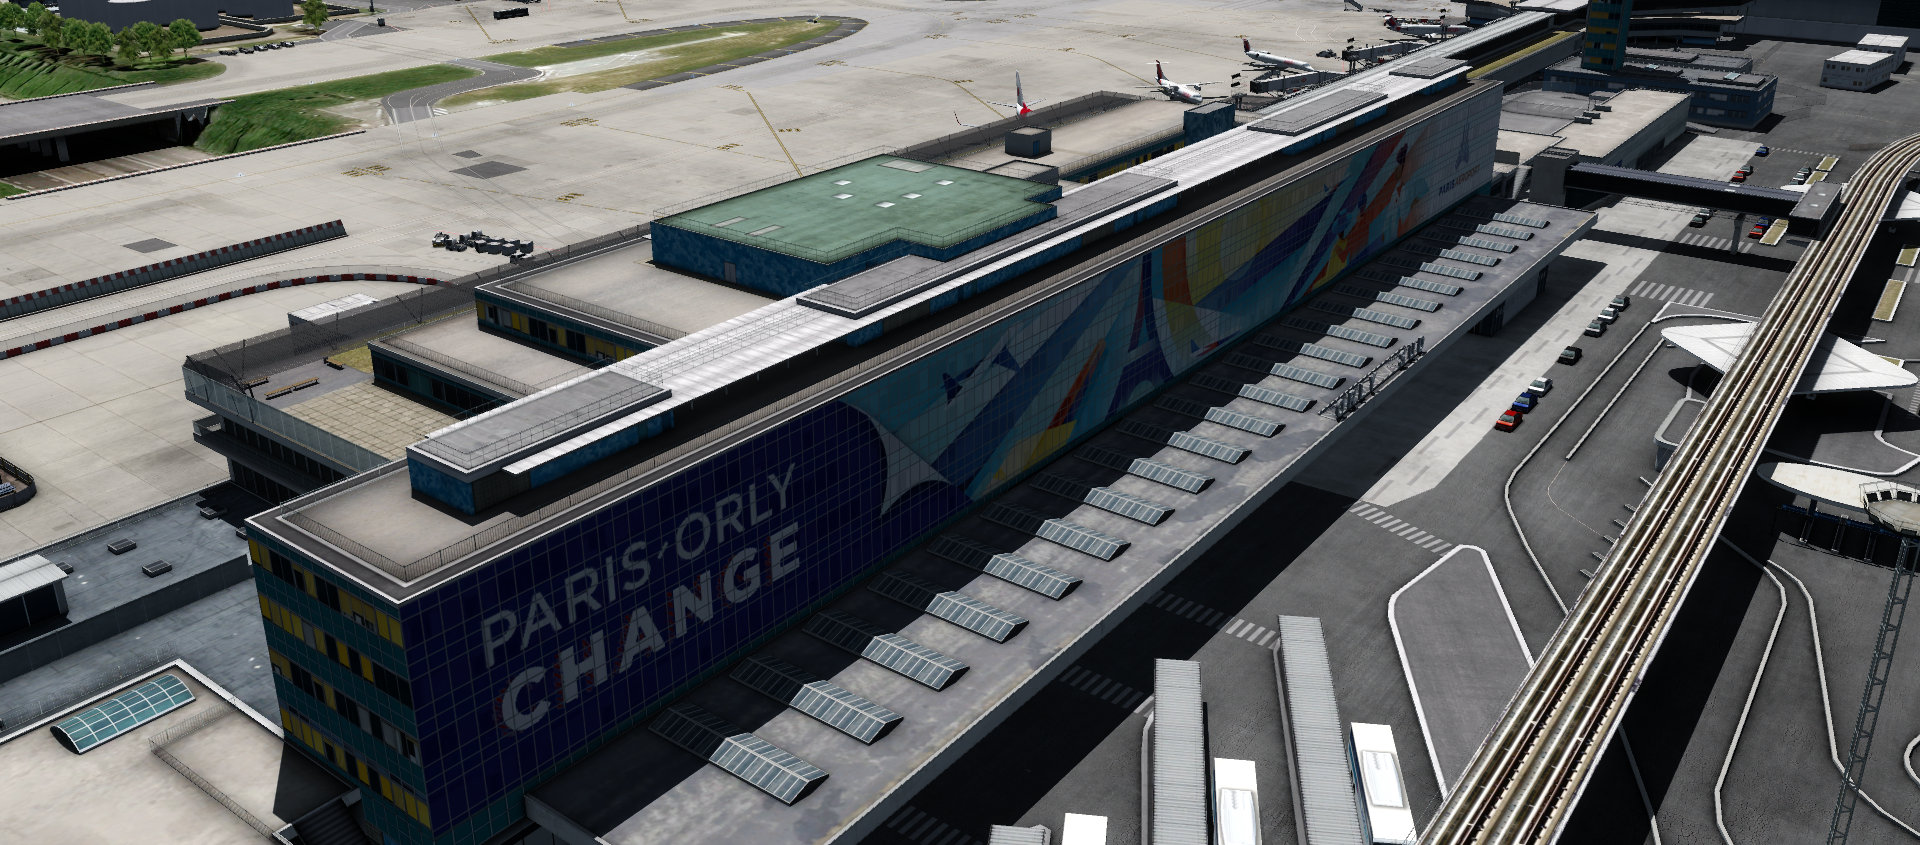 JetStream Designs – Flughafen Paris-Orly Review